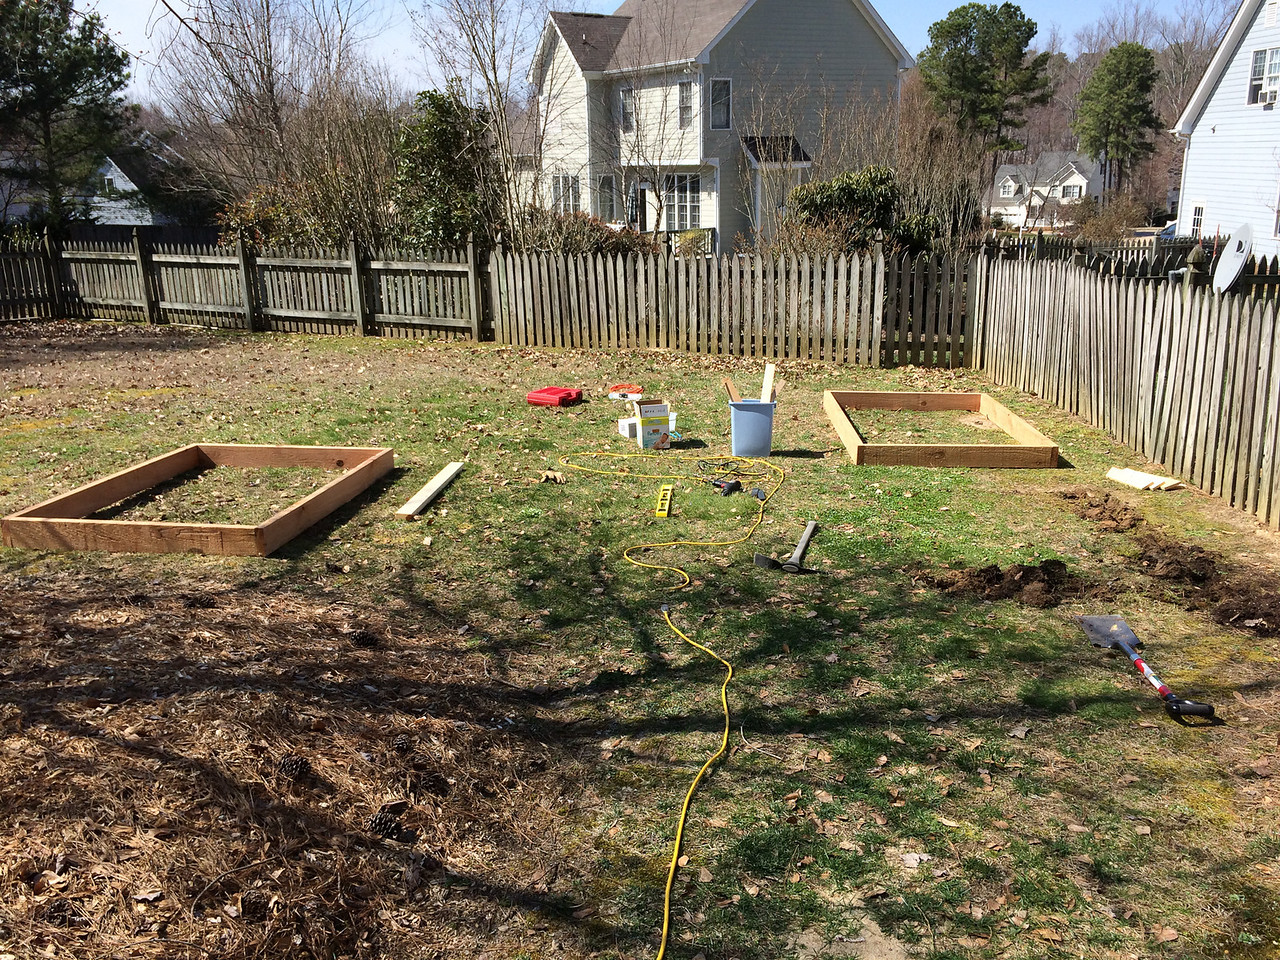 On the first day I assembled all my tools, naively thinking I'd get the whole project done in a single day... I was not being smart.<br /> <br /> The beds would be two boards tall, but I set up one level each as mock-ups so I could settle on their positions and mark out the ground.